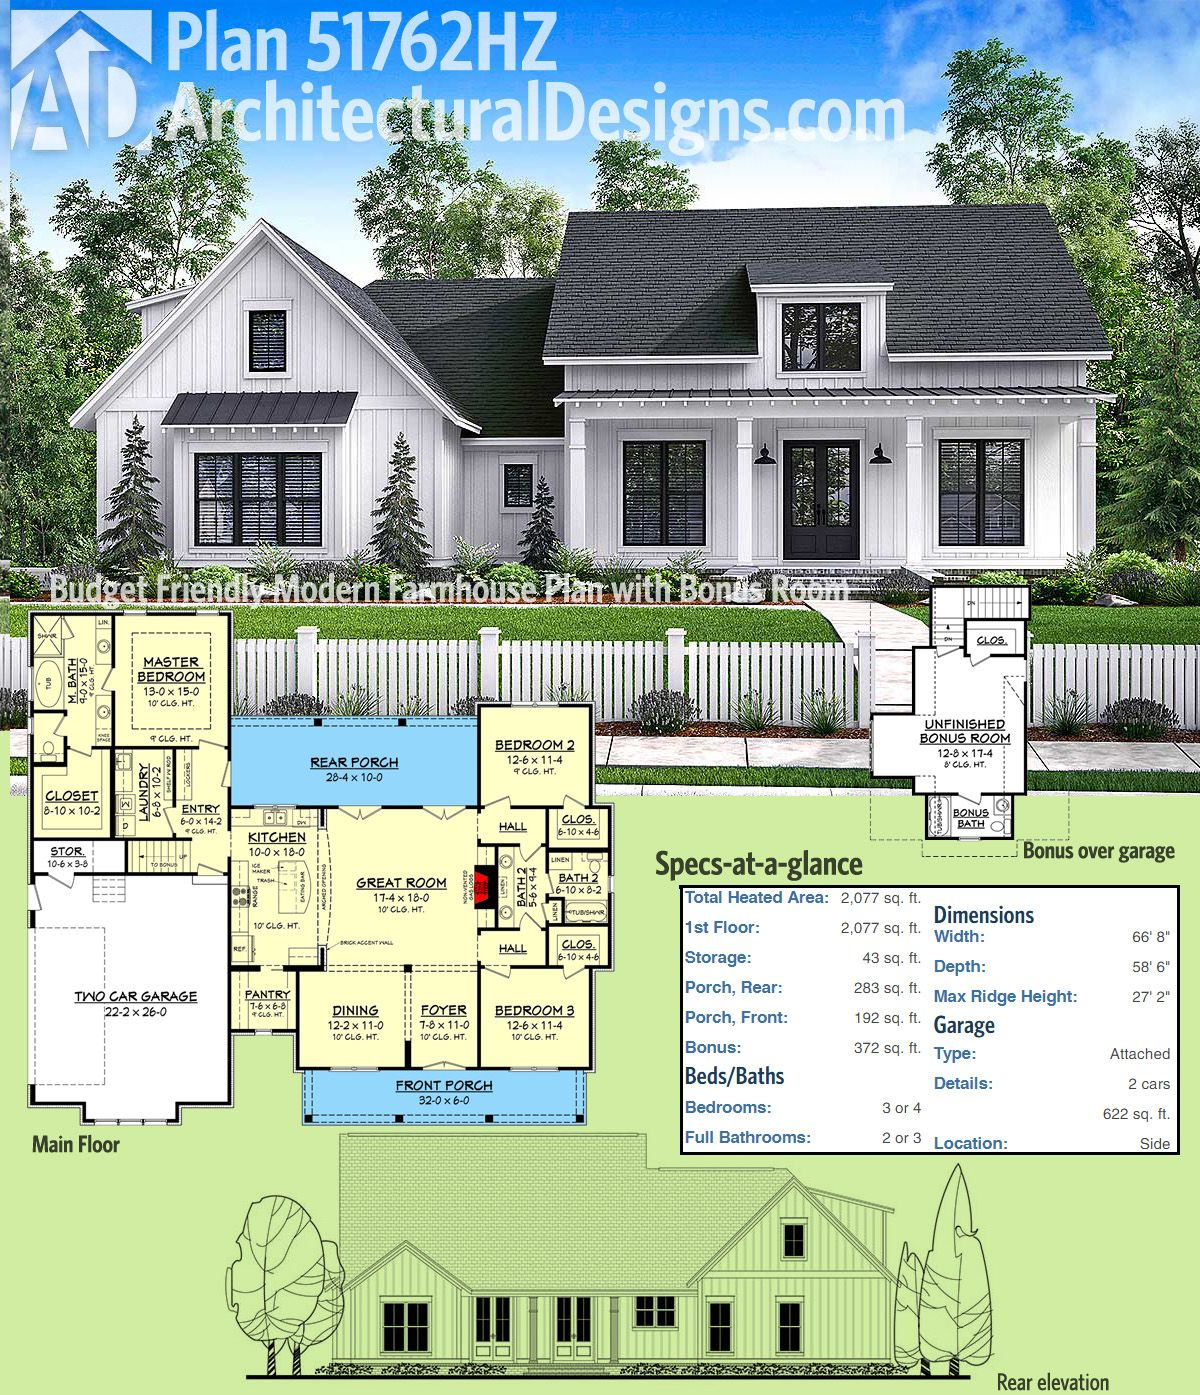 Plan 51762hz budget friendly modern farmhouse plan with for Garage architectural plans